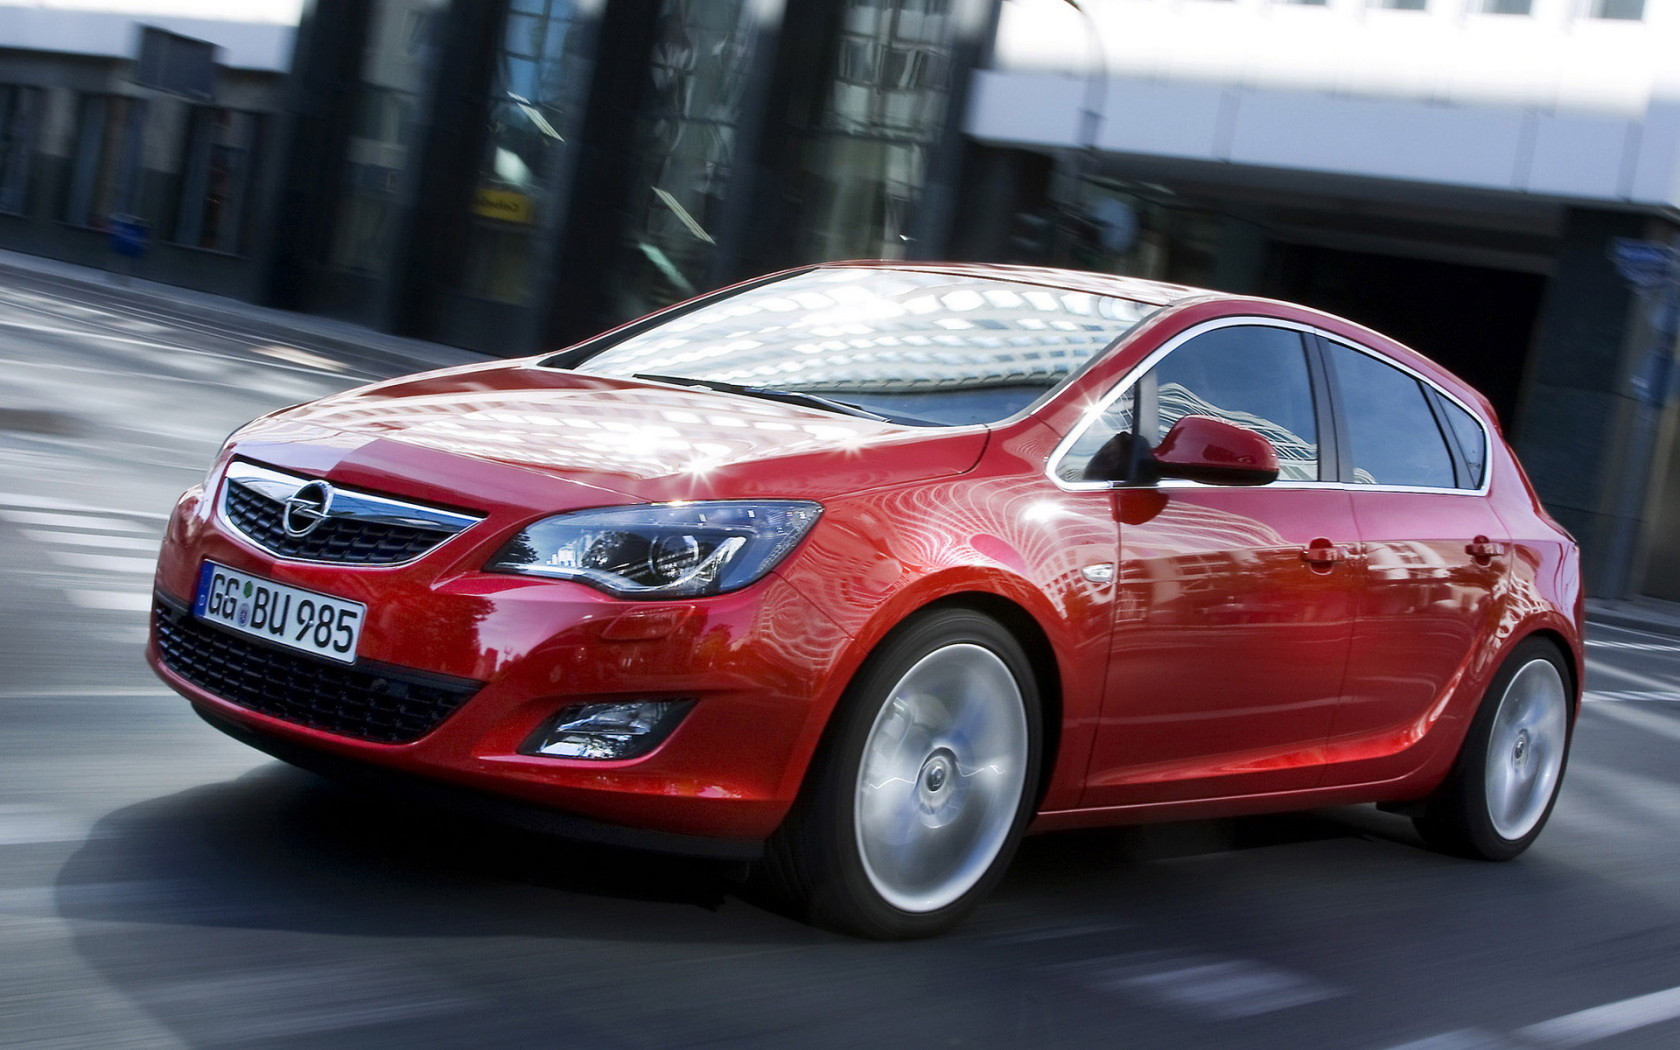 2012 Opel Astra Hatchback 5-door